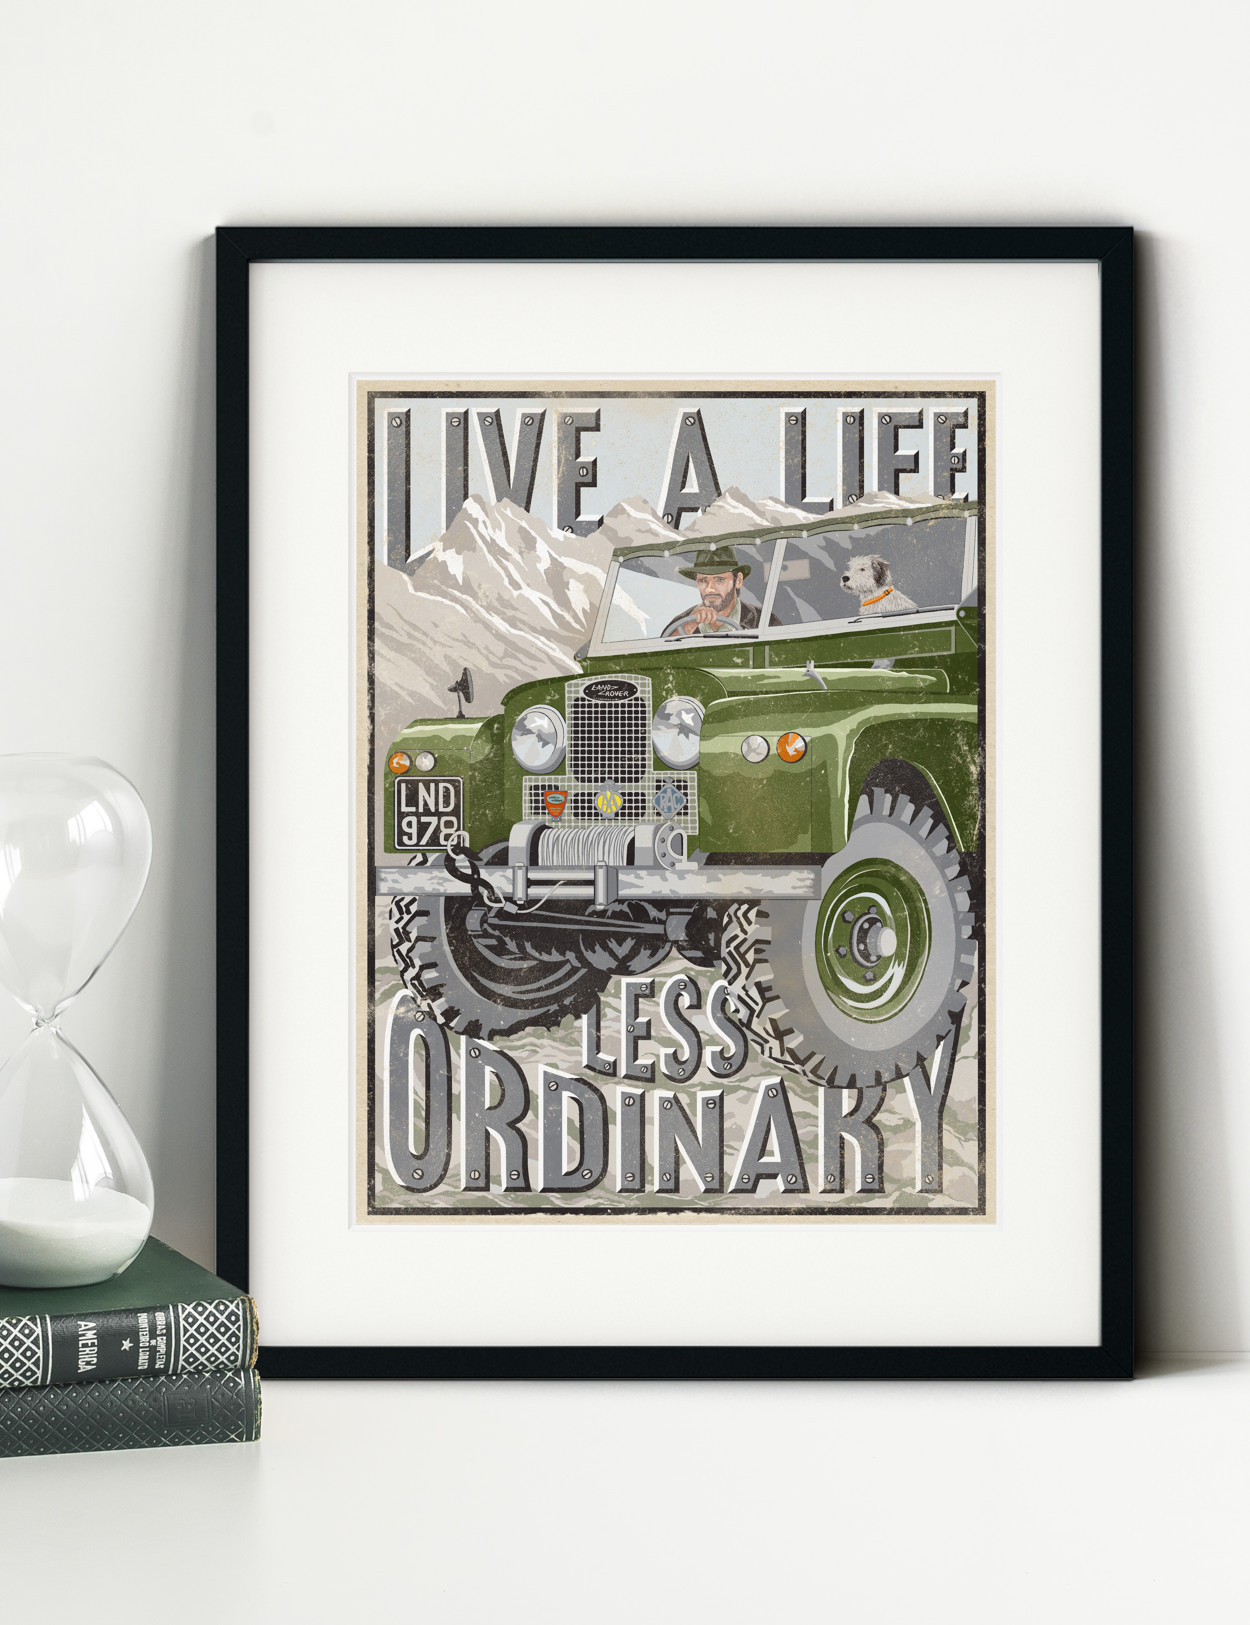 Old Land Rover Defender Series Print | The Enlightened Hound